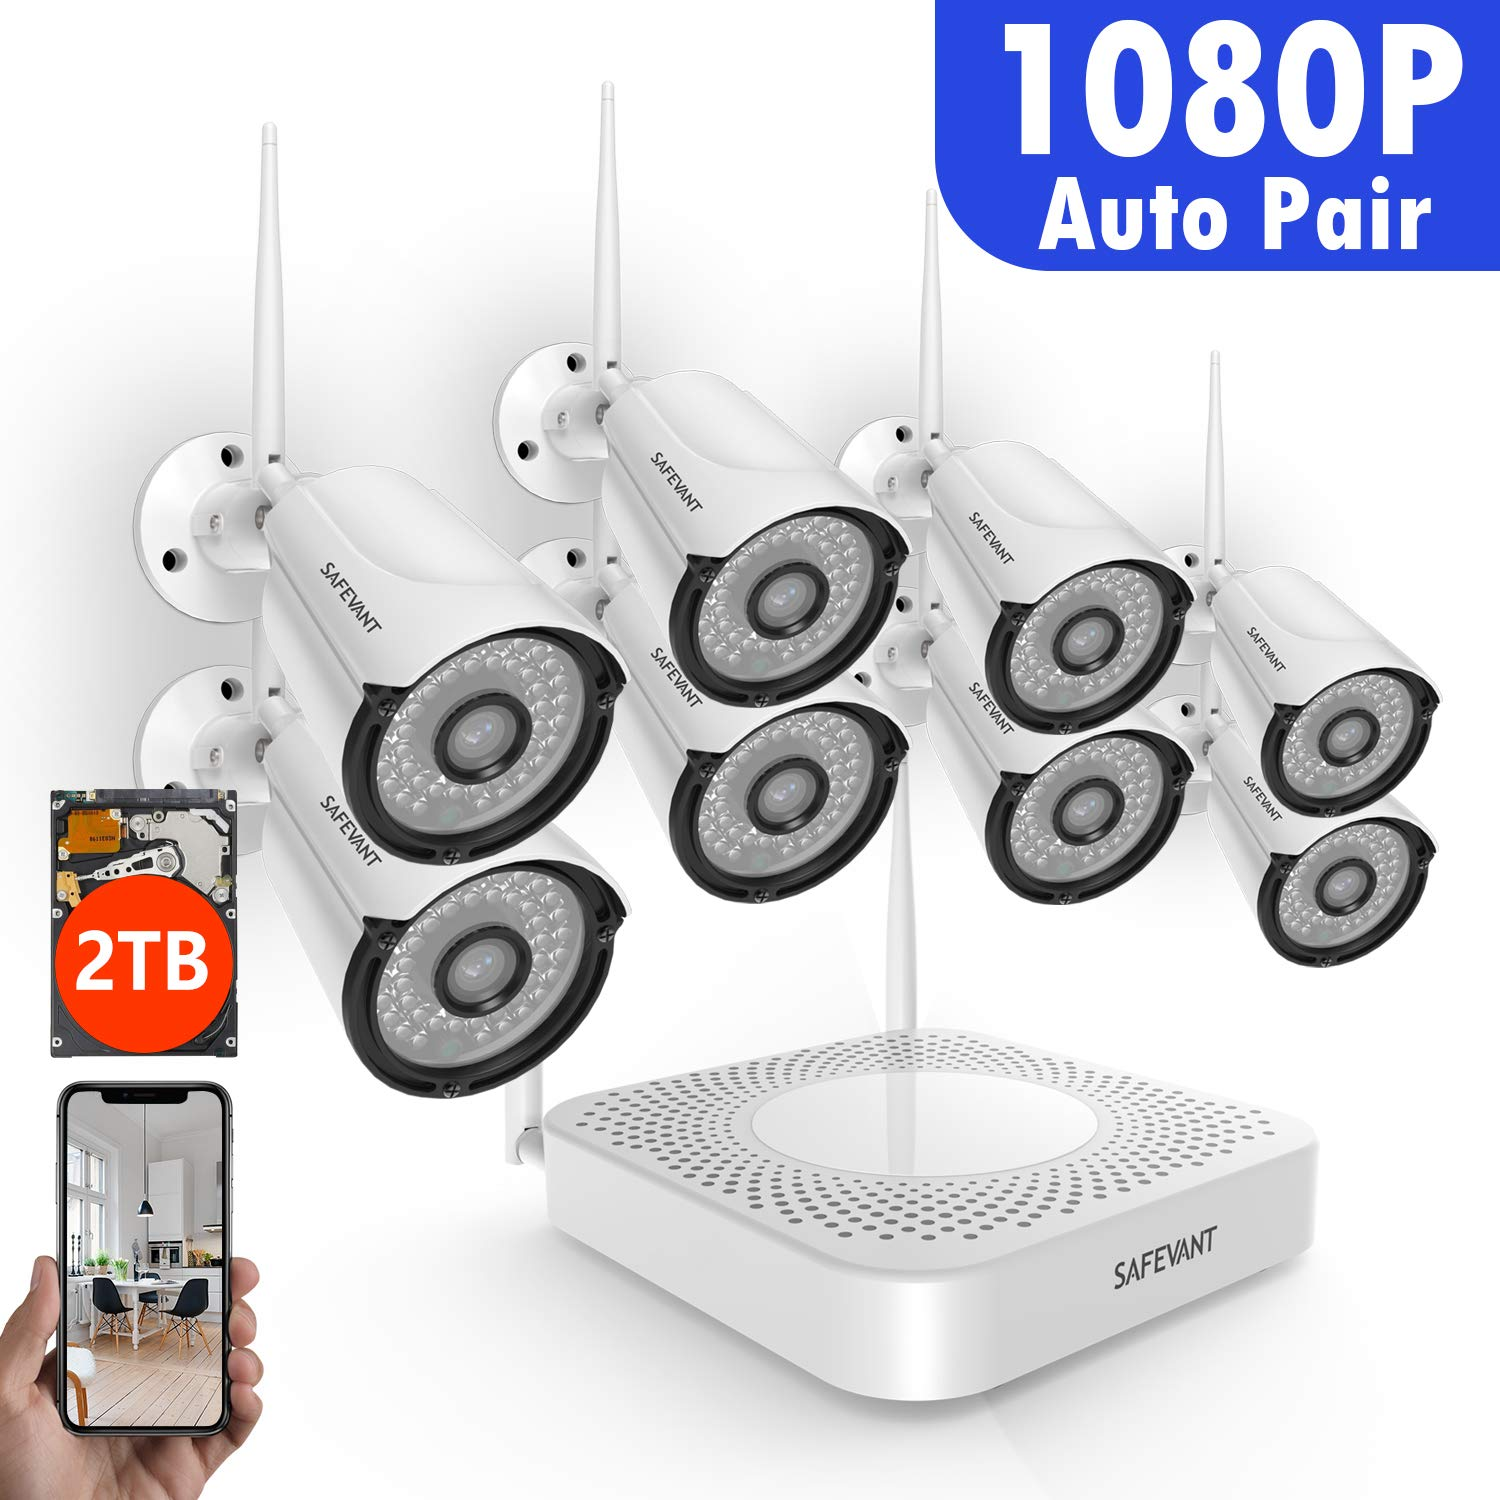 Full HD 1080P 8CH Wireless Security Camera System,SAFEVANT Wireless Camera System 2TB Hard Drive ,8PCS 1080P 2.0MP Indoors Outdoors Wireless IP Cameras,NO Monthly Fee